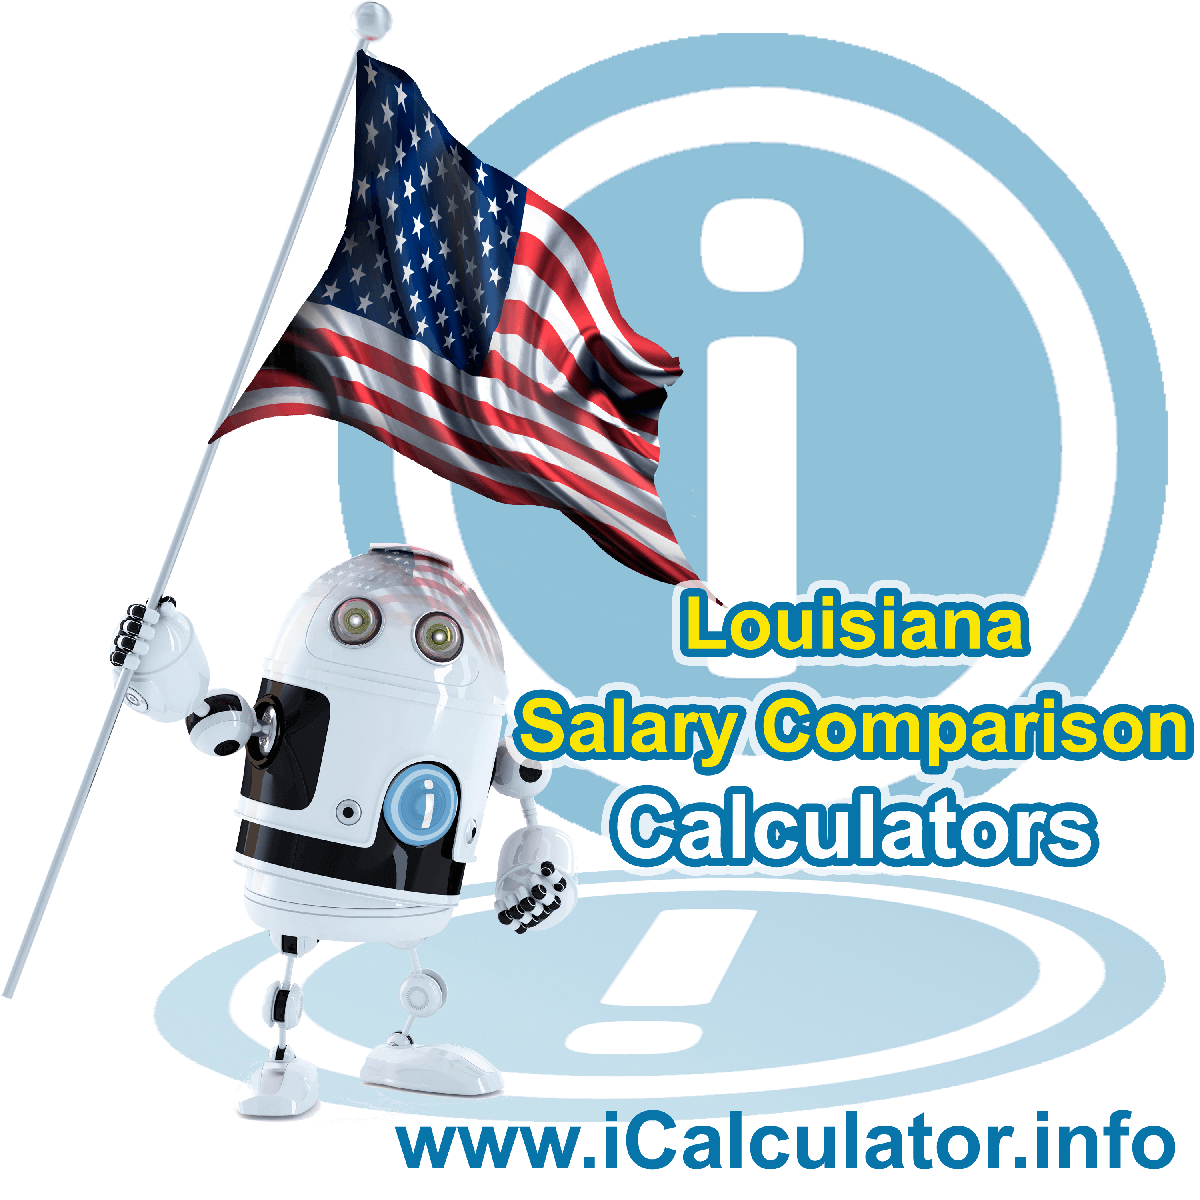 Louisiana Salary Comparison Calculator 2019 | iCalculator | The Louisiana Salary Comparison Calculator allows you to quickly calculate and compare upto 6 salaries in Louisiana or between other states for the 2019 tax year and historical tax years. Its an excellent tool for jobseekers, pay raise comparison and comparison of salaries between different US States